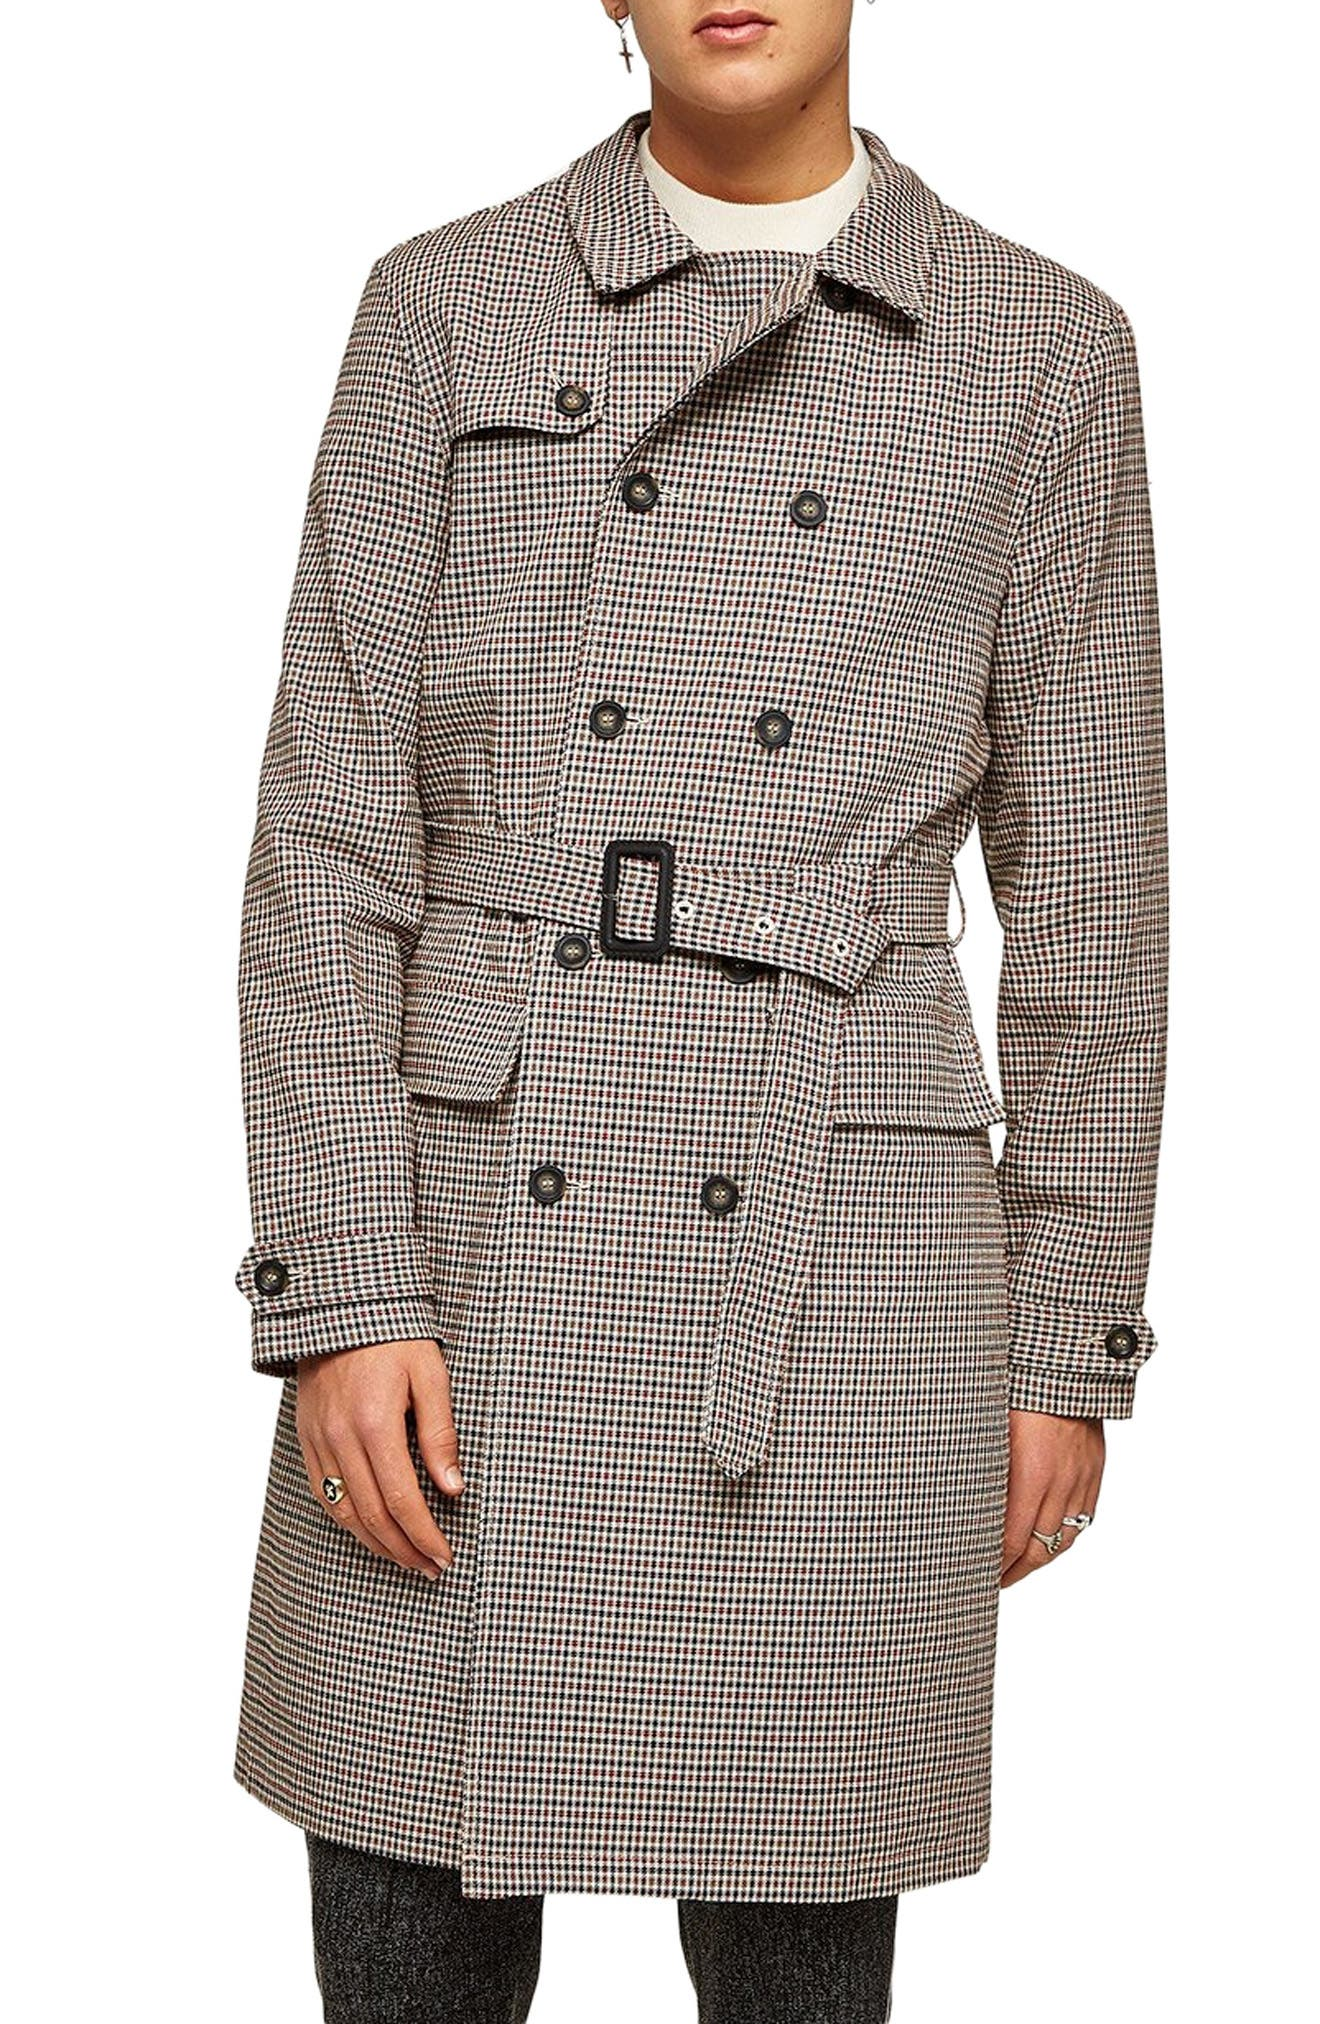 Houndstooth Trench Coat,                             Main thumbnail 1, color,                             BROWN MULTI